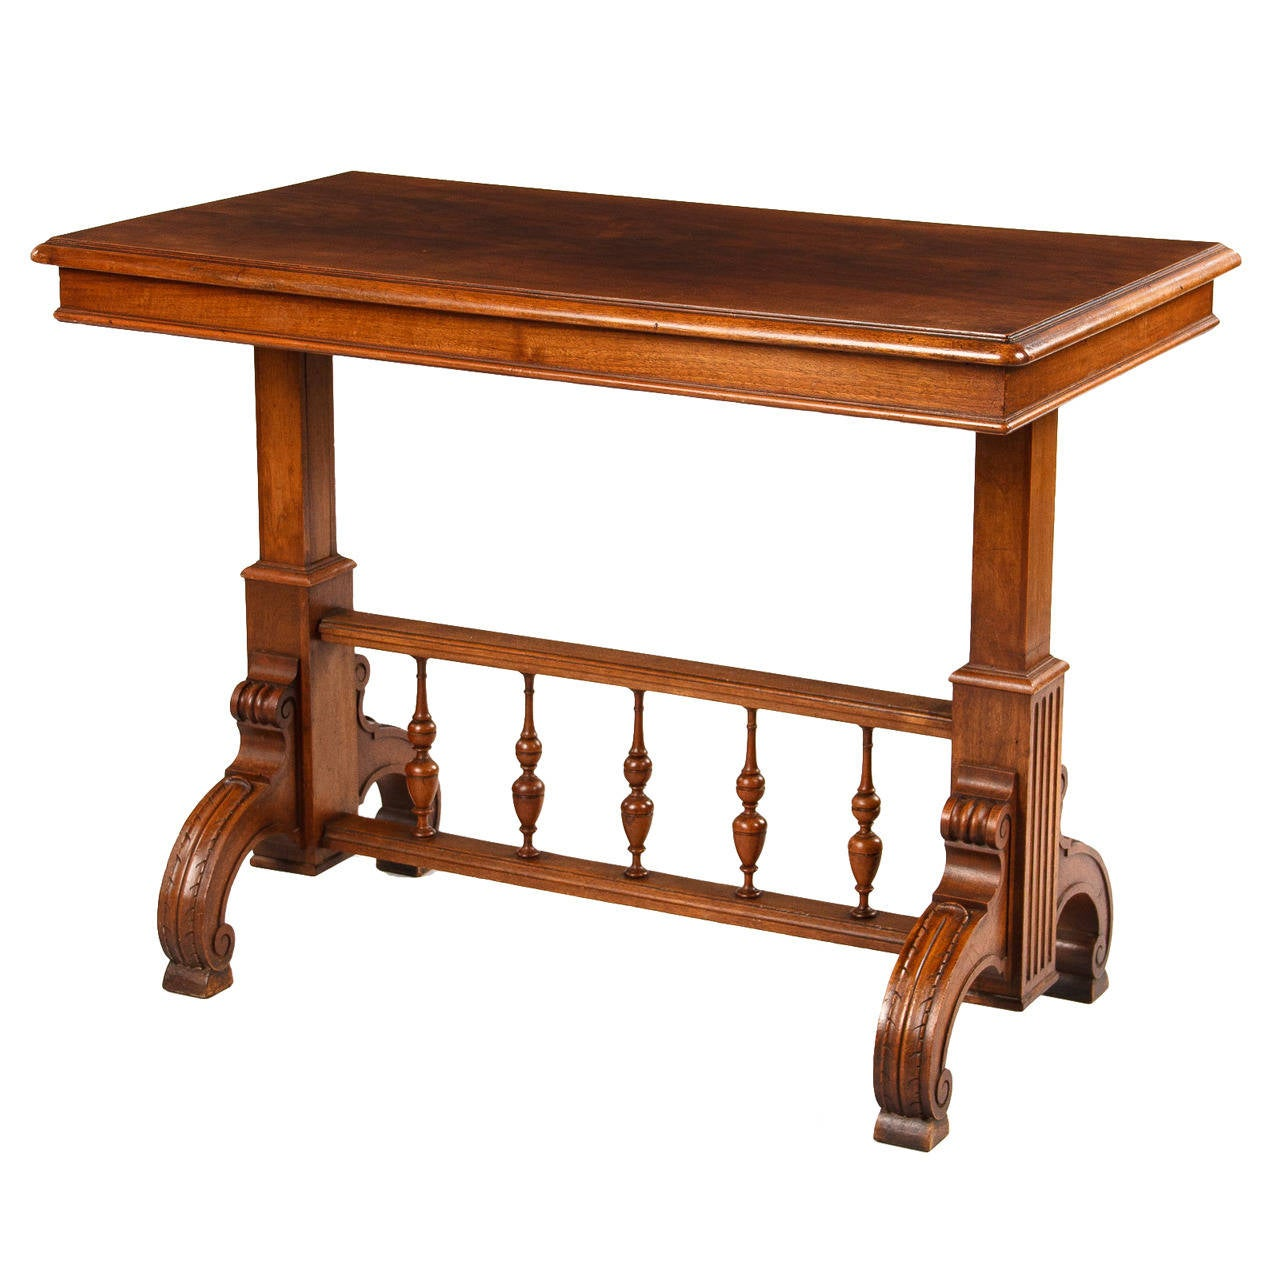 rare henri ii style serving table at 1stdibs. Black Bedroom Furniture Sets. Home Design Ideas